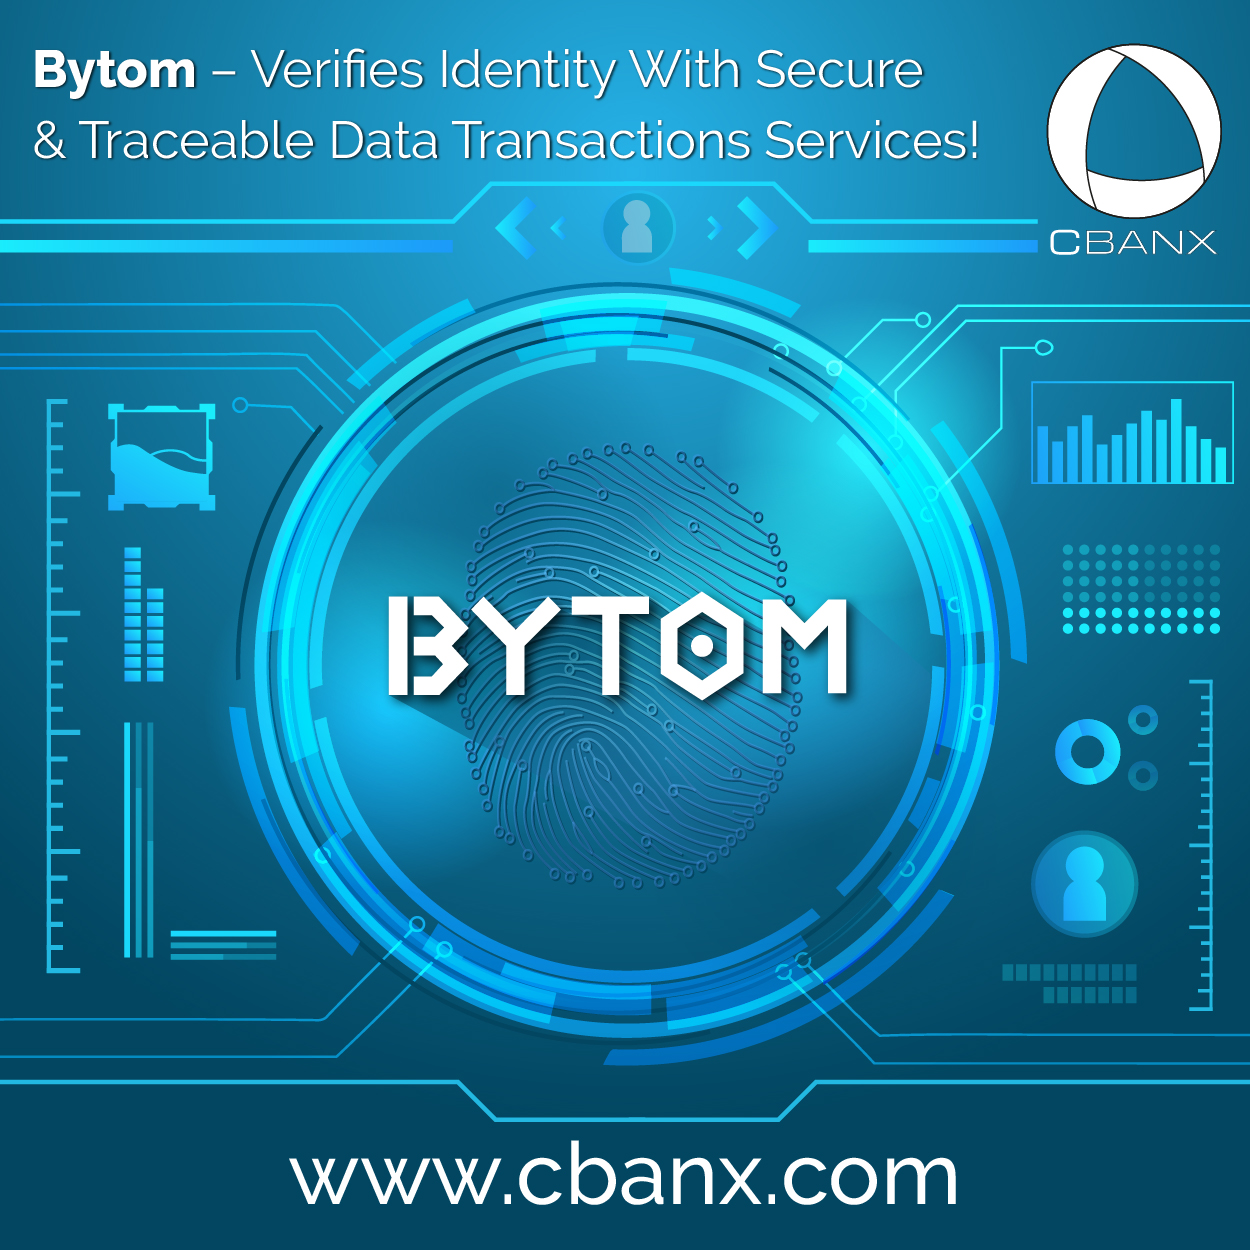 Bytom – Verifies Identity With Secure & Traceable Data Transactions Services!